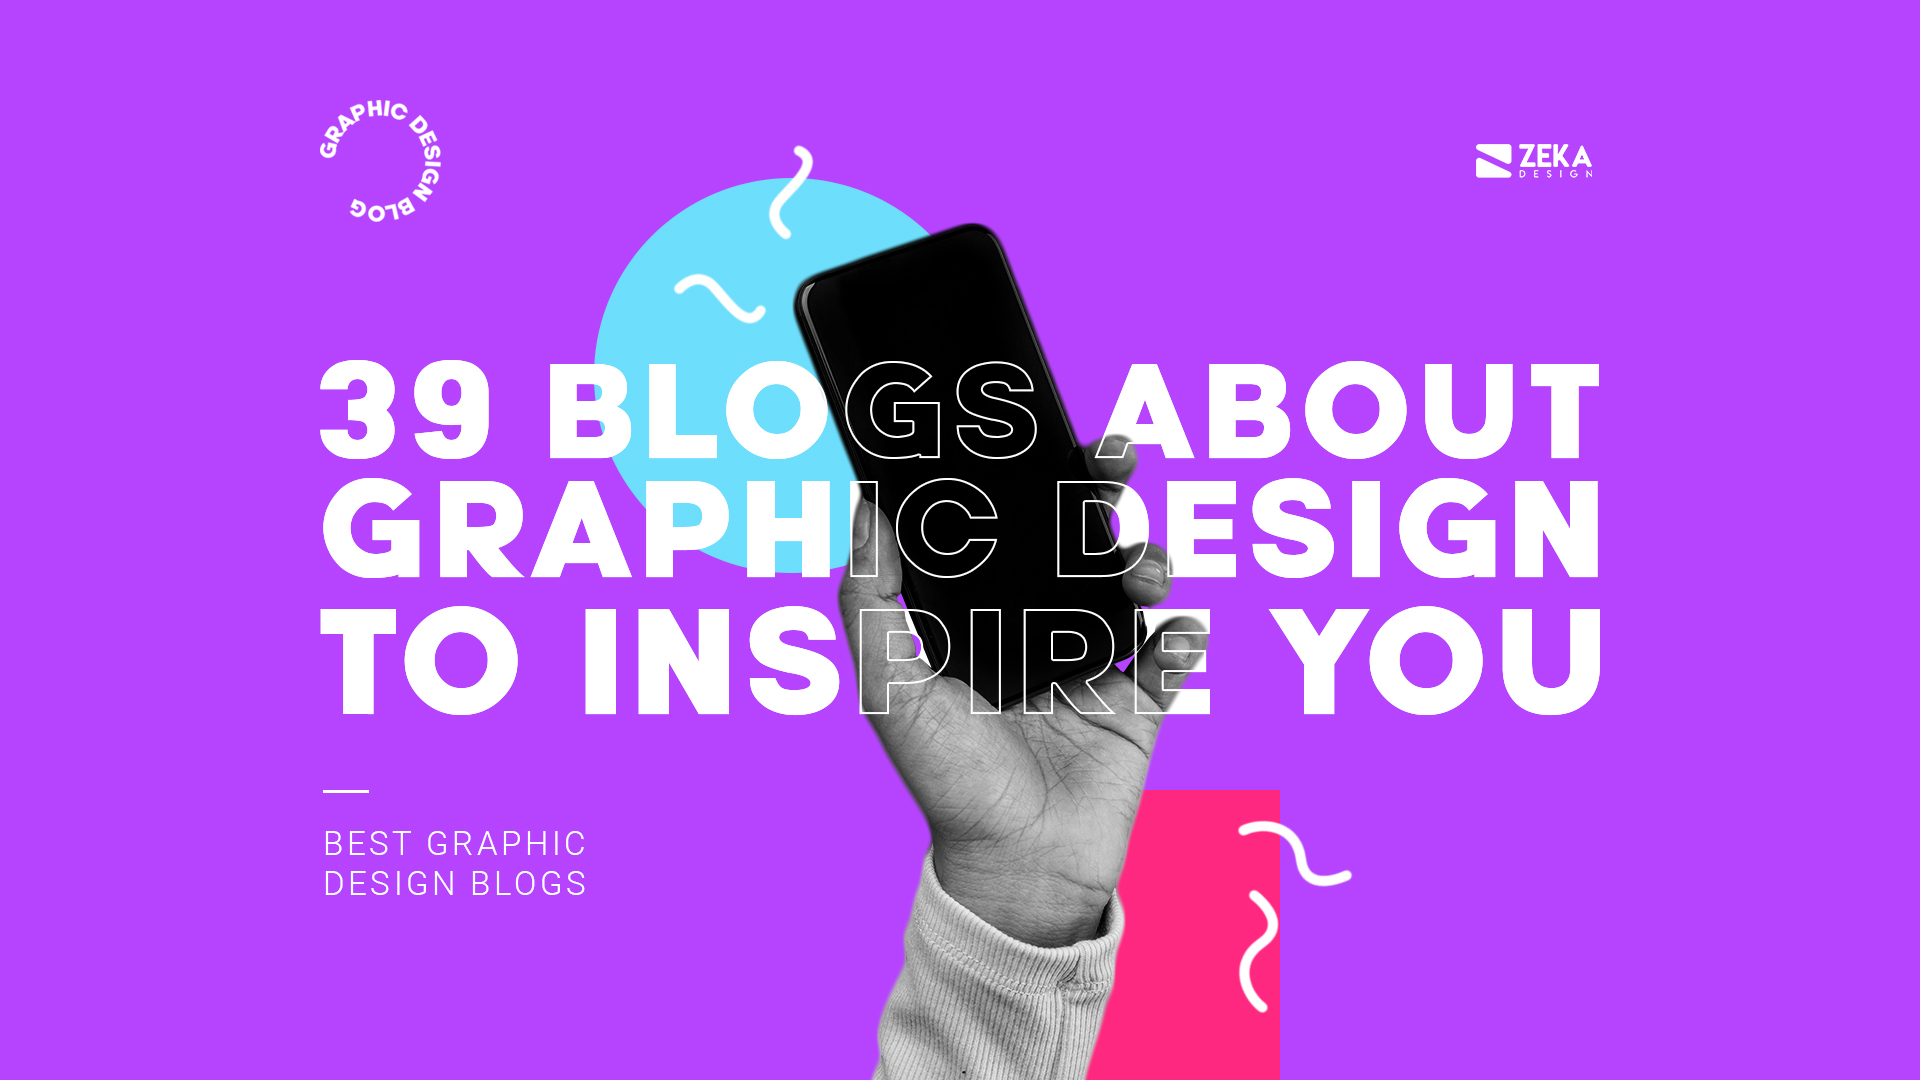 39 Best Graphic Design Blogs For Inspiration